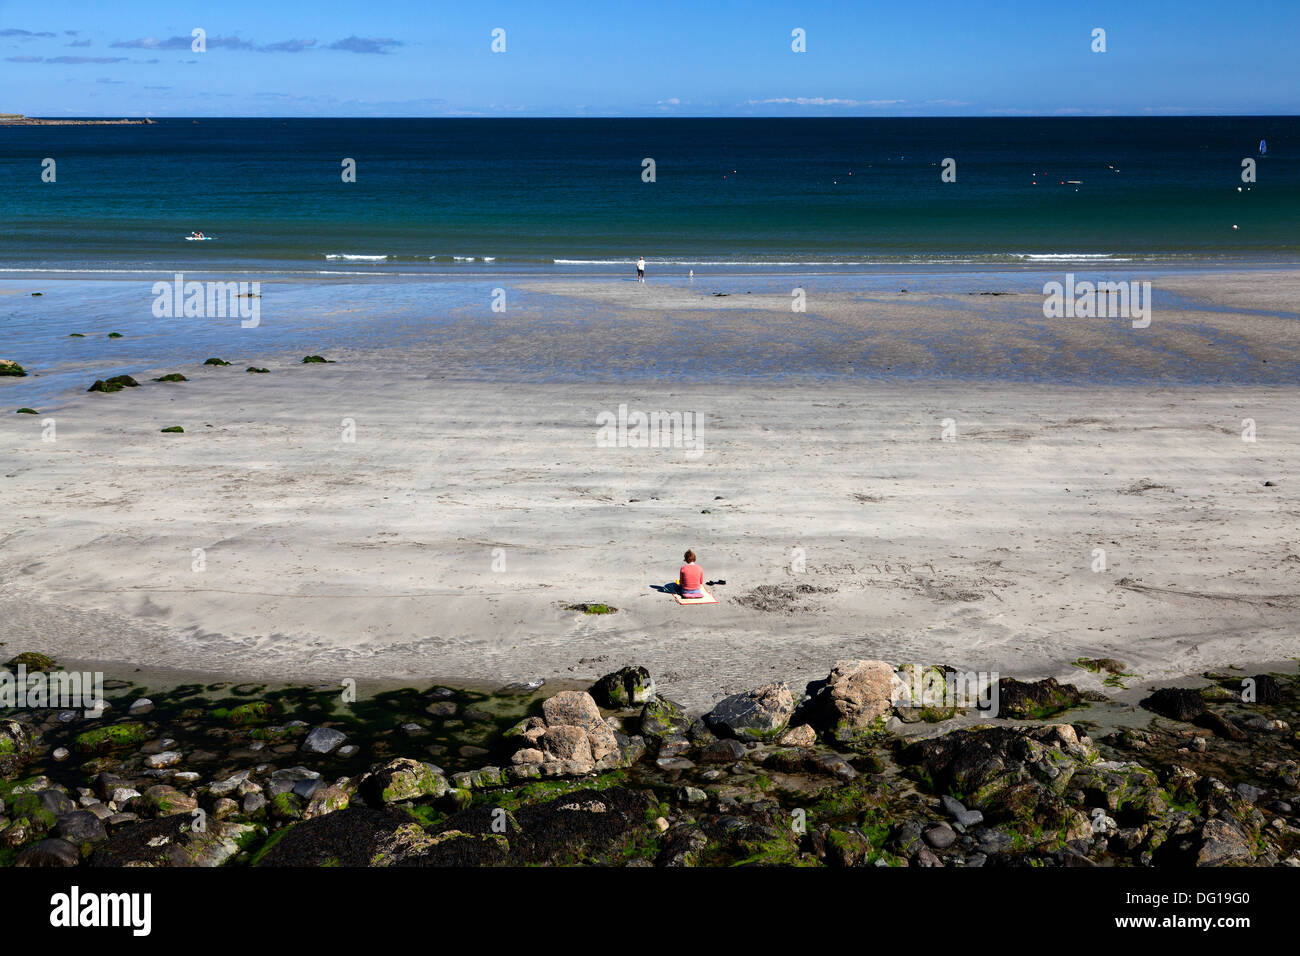 solitary-woman-sitting-on-the-beach-coverack-cornwall-DG19G0.jpg